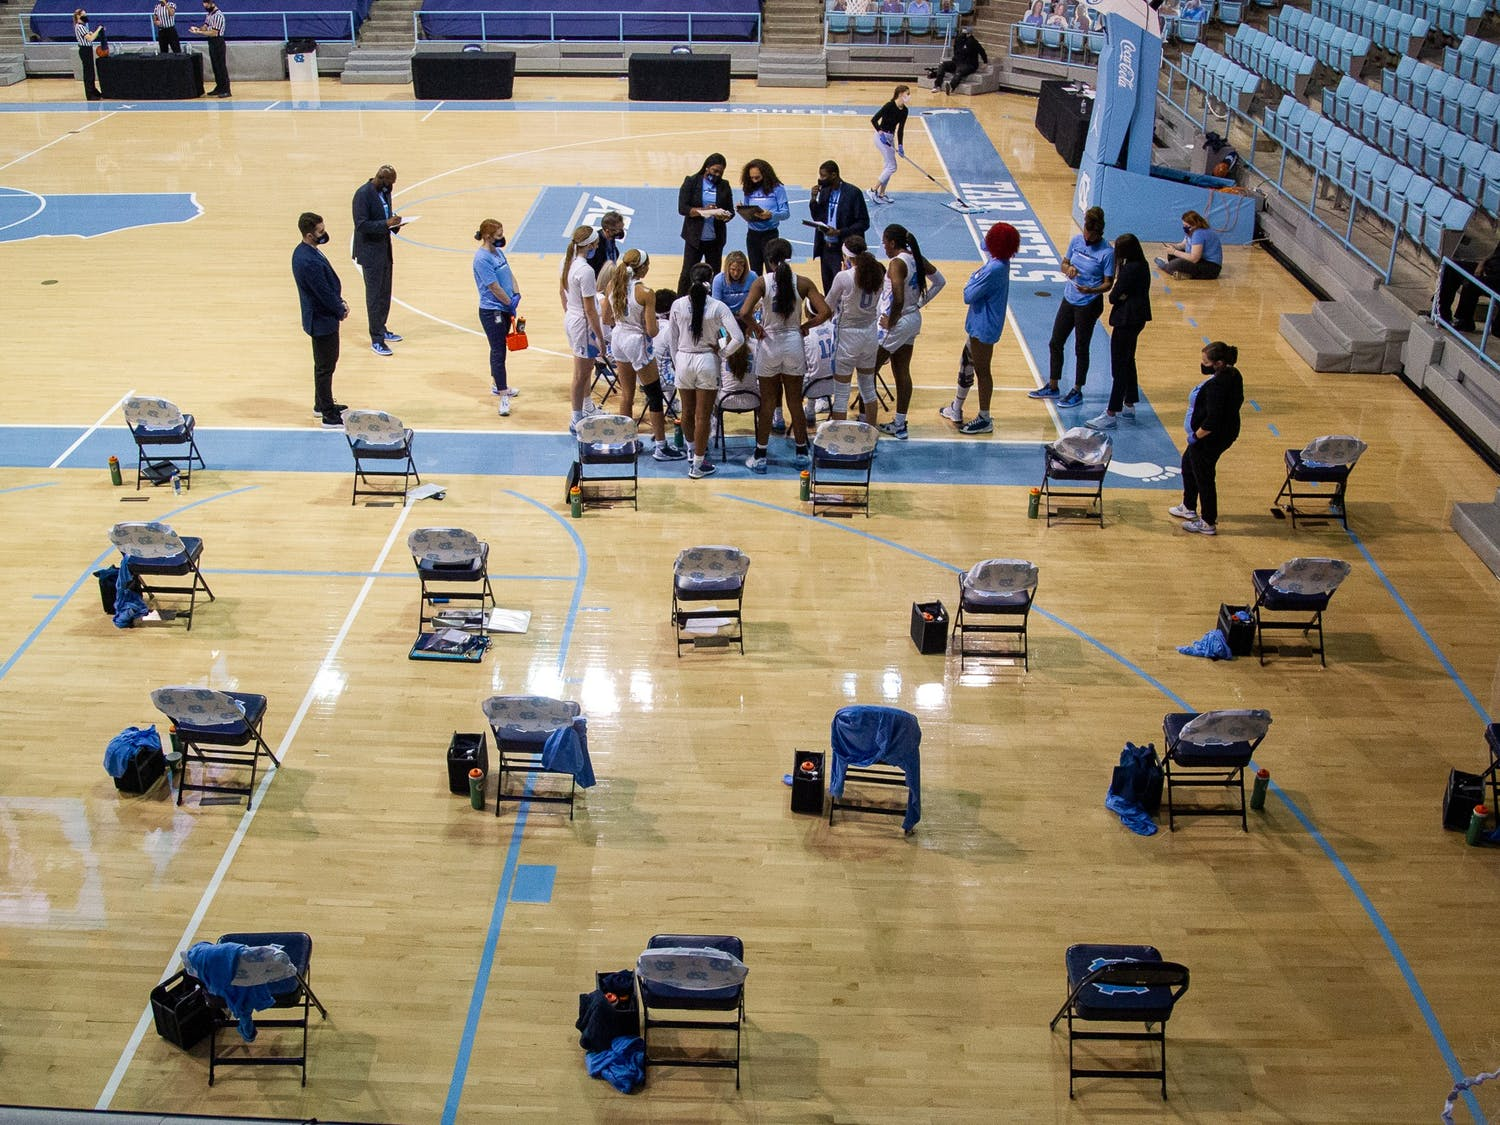 The UNC team huddles in Carmichael Arena on Jan. 14, 2021 in Chapel Hill, N.C. The Tar Heels lost to the Hokies 66-54.